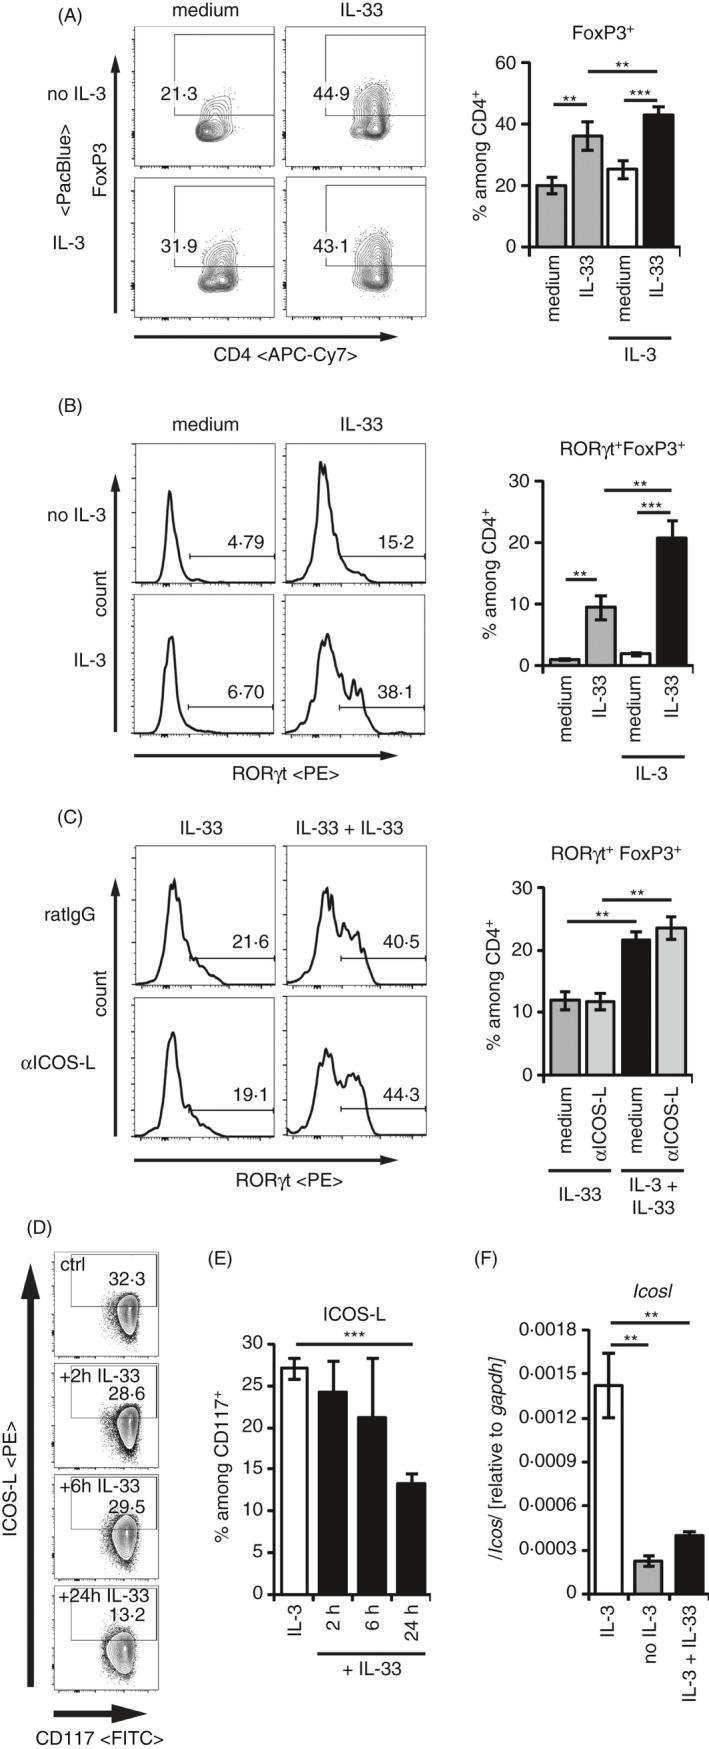 IL‐3 enhances the IL‐33‐induced RORγt + T reg development independent from ICOS‐L. (A‐C) CD25 + CD4 + splenic T regs were cocultured with BMMCs in medium ± 50 ng/ml recombinant IL‐33 alone, or in the presence of 50 ng/ml recombinant IL‐3 ± 50 ng/ml recombinant IL‐33 for 3 days. Transcription factor expression of FoxP3 among CD4 + , and RORγt among FoxP3 + CD4 + T regs was analysed by flow cytometry. Representative FACS plots and histograms are shown in the right panels. Diagrams on the right summarize data from separate experiments representing BMMCs from n > 10 biologically independent donors. (A) FoxP3 + cells among CD4+ Th cells. (B) RORγt + FoxP3 + expression among CD4 + Th cells. (C) RORγt + FoxP3 + expression among CD4 + Th cells in the presence of blocking anti‐ICOS‐L antibody. (D, E) BMMCs were cultured in the presence of recombinant 50 ng/ml IL‐3 ( n = 12 different donors) and 50 ng/ml IL‐33 for 2 ( n = 2 different donors), 6 ( n = 2 different donors) or 24 h ( n = 12 different donors). Frequencies of ICOS‐L + cells were analysed among CD117 + BMMCs by flow cytometry. (D) Representative FACS plots. (E) Data from all cultures of BMMCs are summarized. (F) BMMCs were cultured in medium ( n = 6), medium containing 50 ng/ml recombinant IL‐3 alone ( n = 6) or with additional 50 ng/ml recombinant IL‐33 ( n = 3). Transcript levels of Icosl and Gapdh were quantified by qRT‐PCR after 24 h. Relative expressions of Icosl related to Gapdh are summarized from the indicated numbers of independent biological replicates. Diagrams show average values of all experiments ± SEM. Statistics were done with Student's t‐ test: n.s . not significant; * p